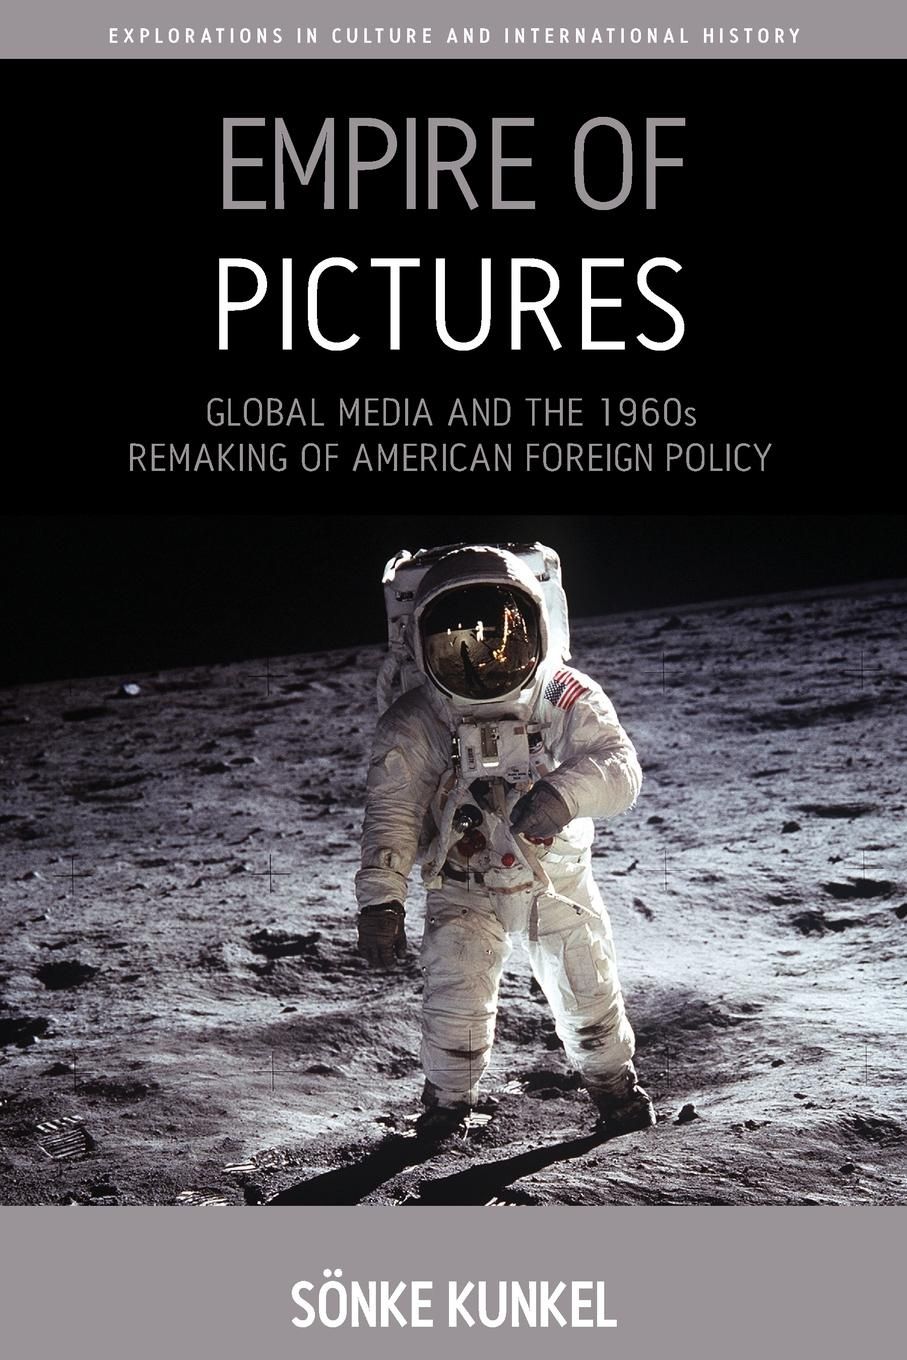 S Kunkel Empire of Pictures. Global Media and the 1960s Remaking of American Foreign Policy raboy marc the handbook of global media and communication policy